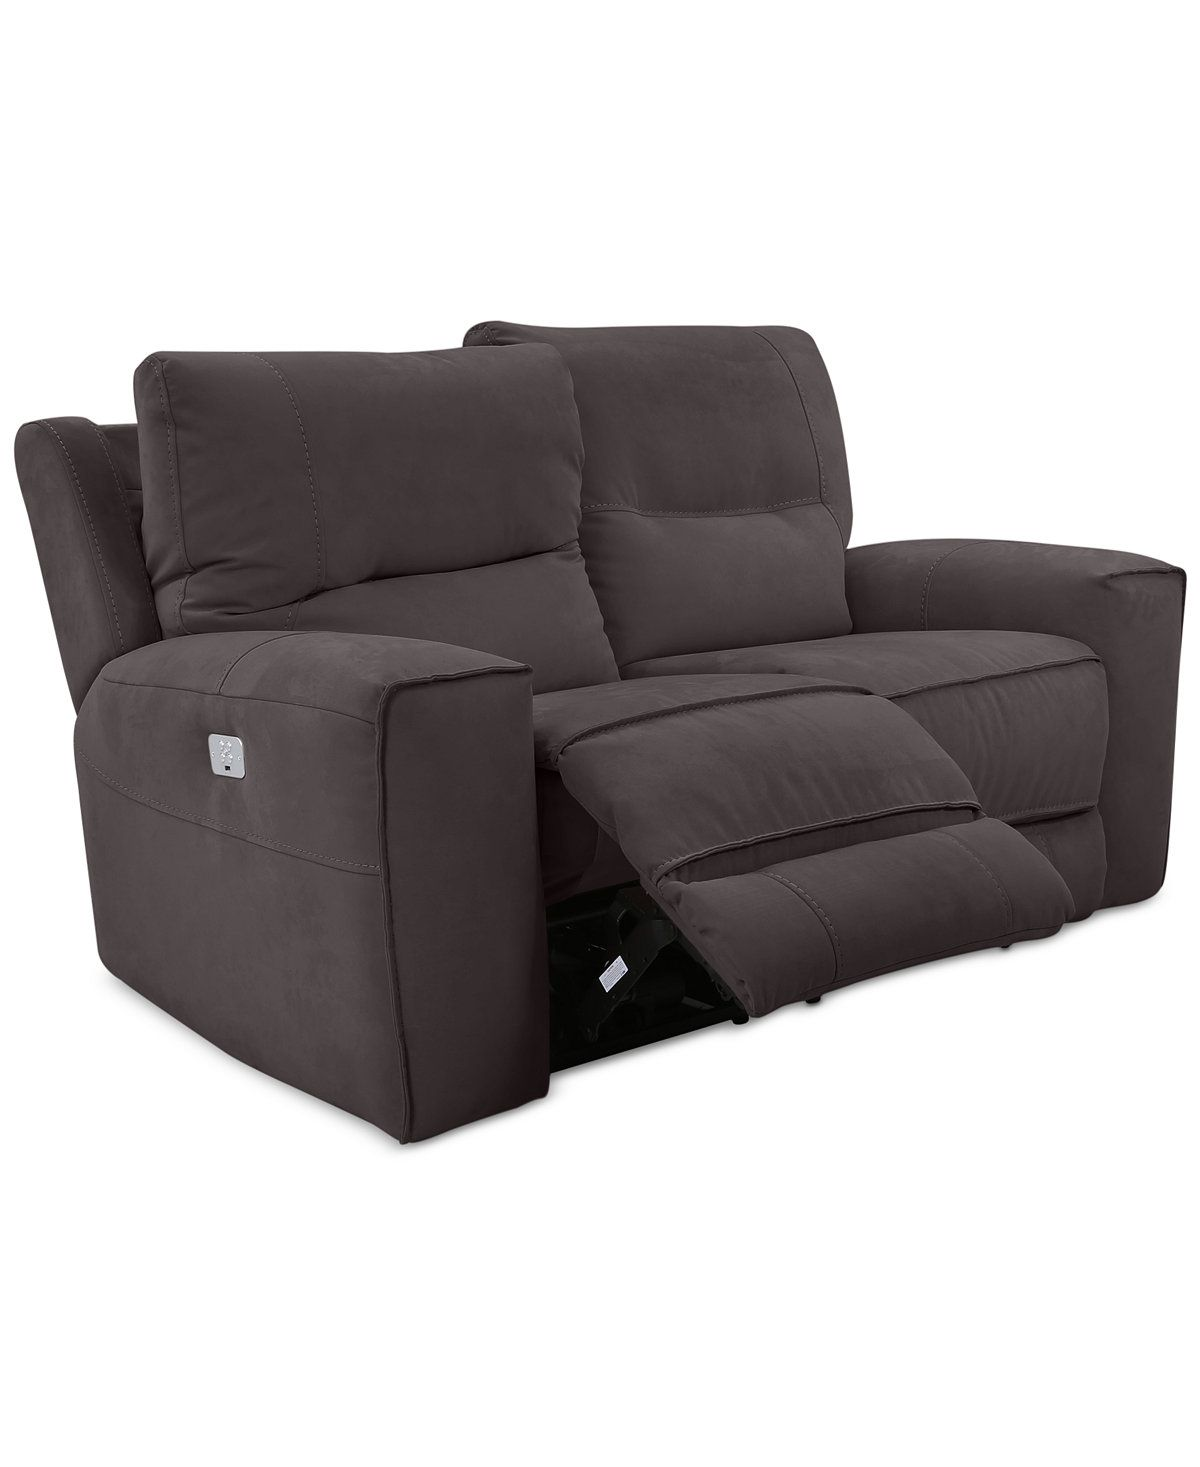 Pin By Jane Smith On 2017 Apt Contemporary Recliners Furniture Power Reclining Sofa